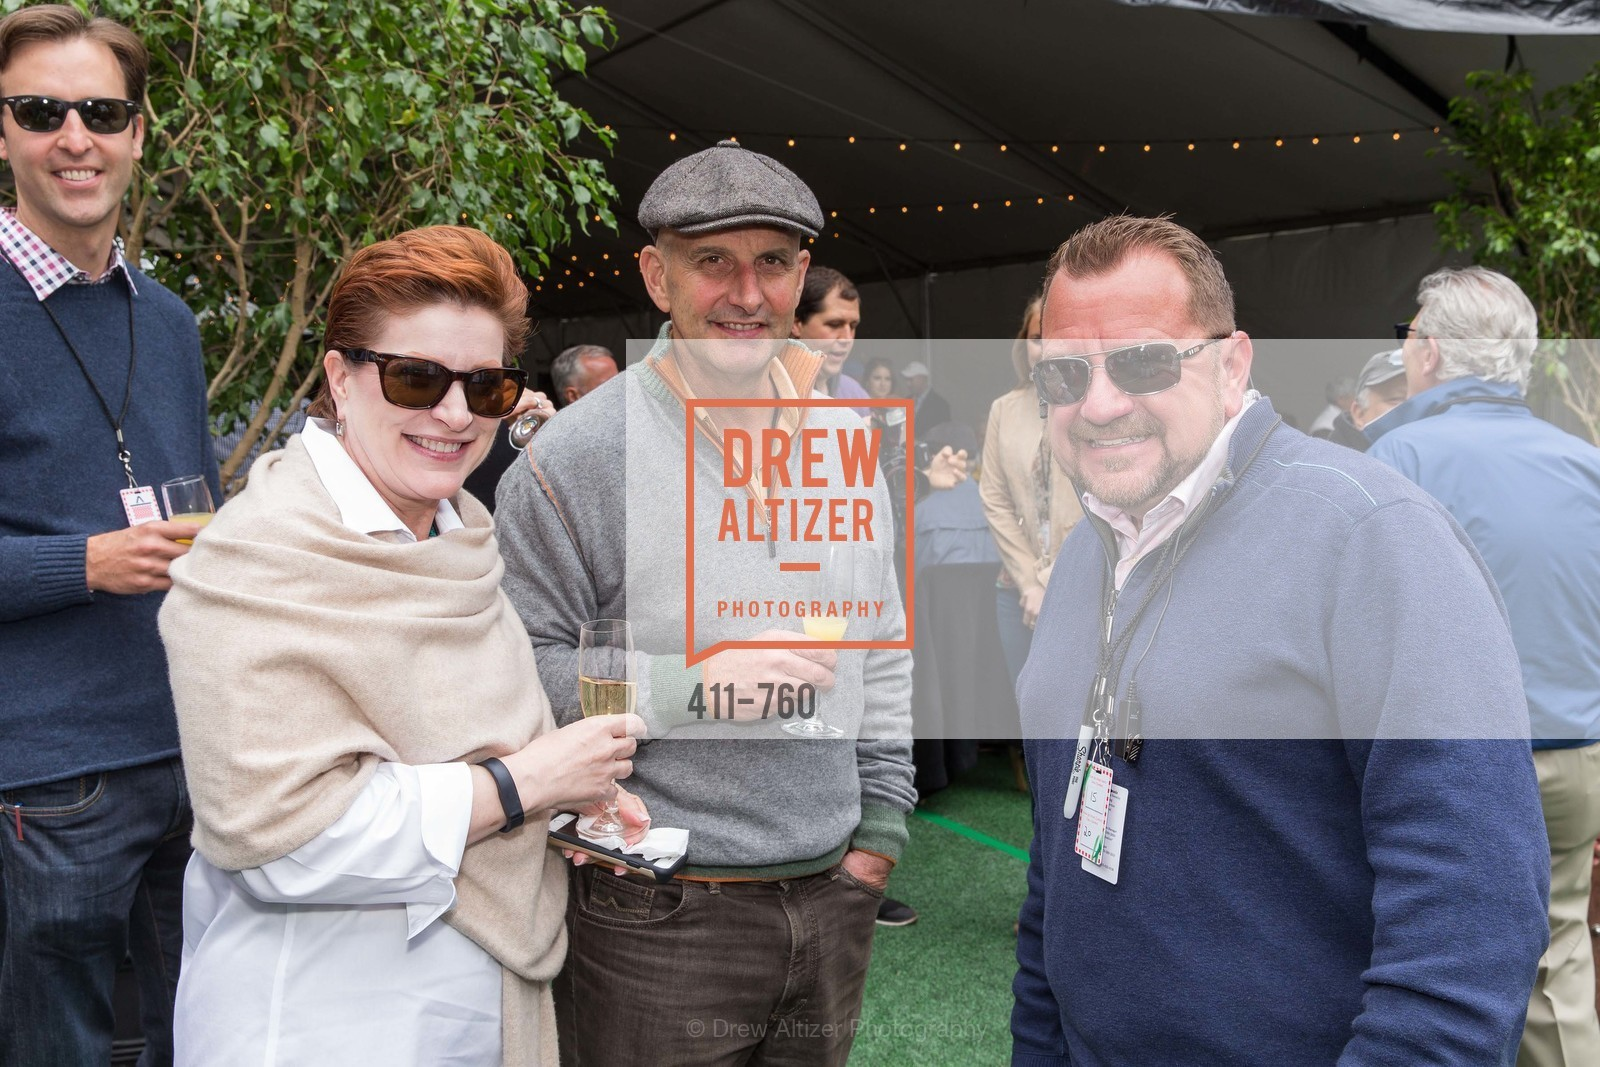 Karen Weber, Chris Carter, Steven Haines, The Big Picnic! A Benefit & Concert for STERN GROVE FESTIVAL, US, June 14th, 2015,Drew Altizer, Drew Altizer Photography, full-service agency, private events, San Francisco photographer, photographer california